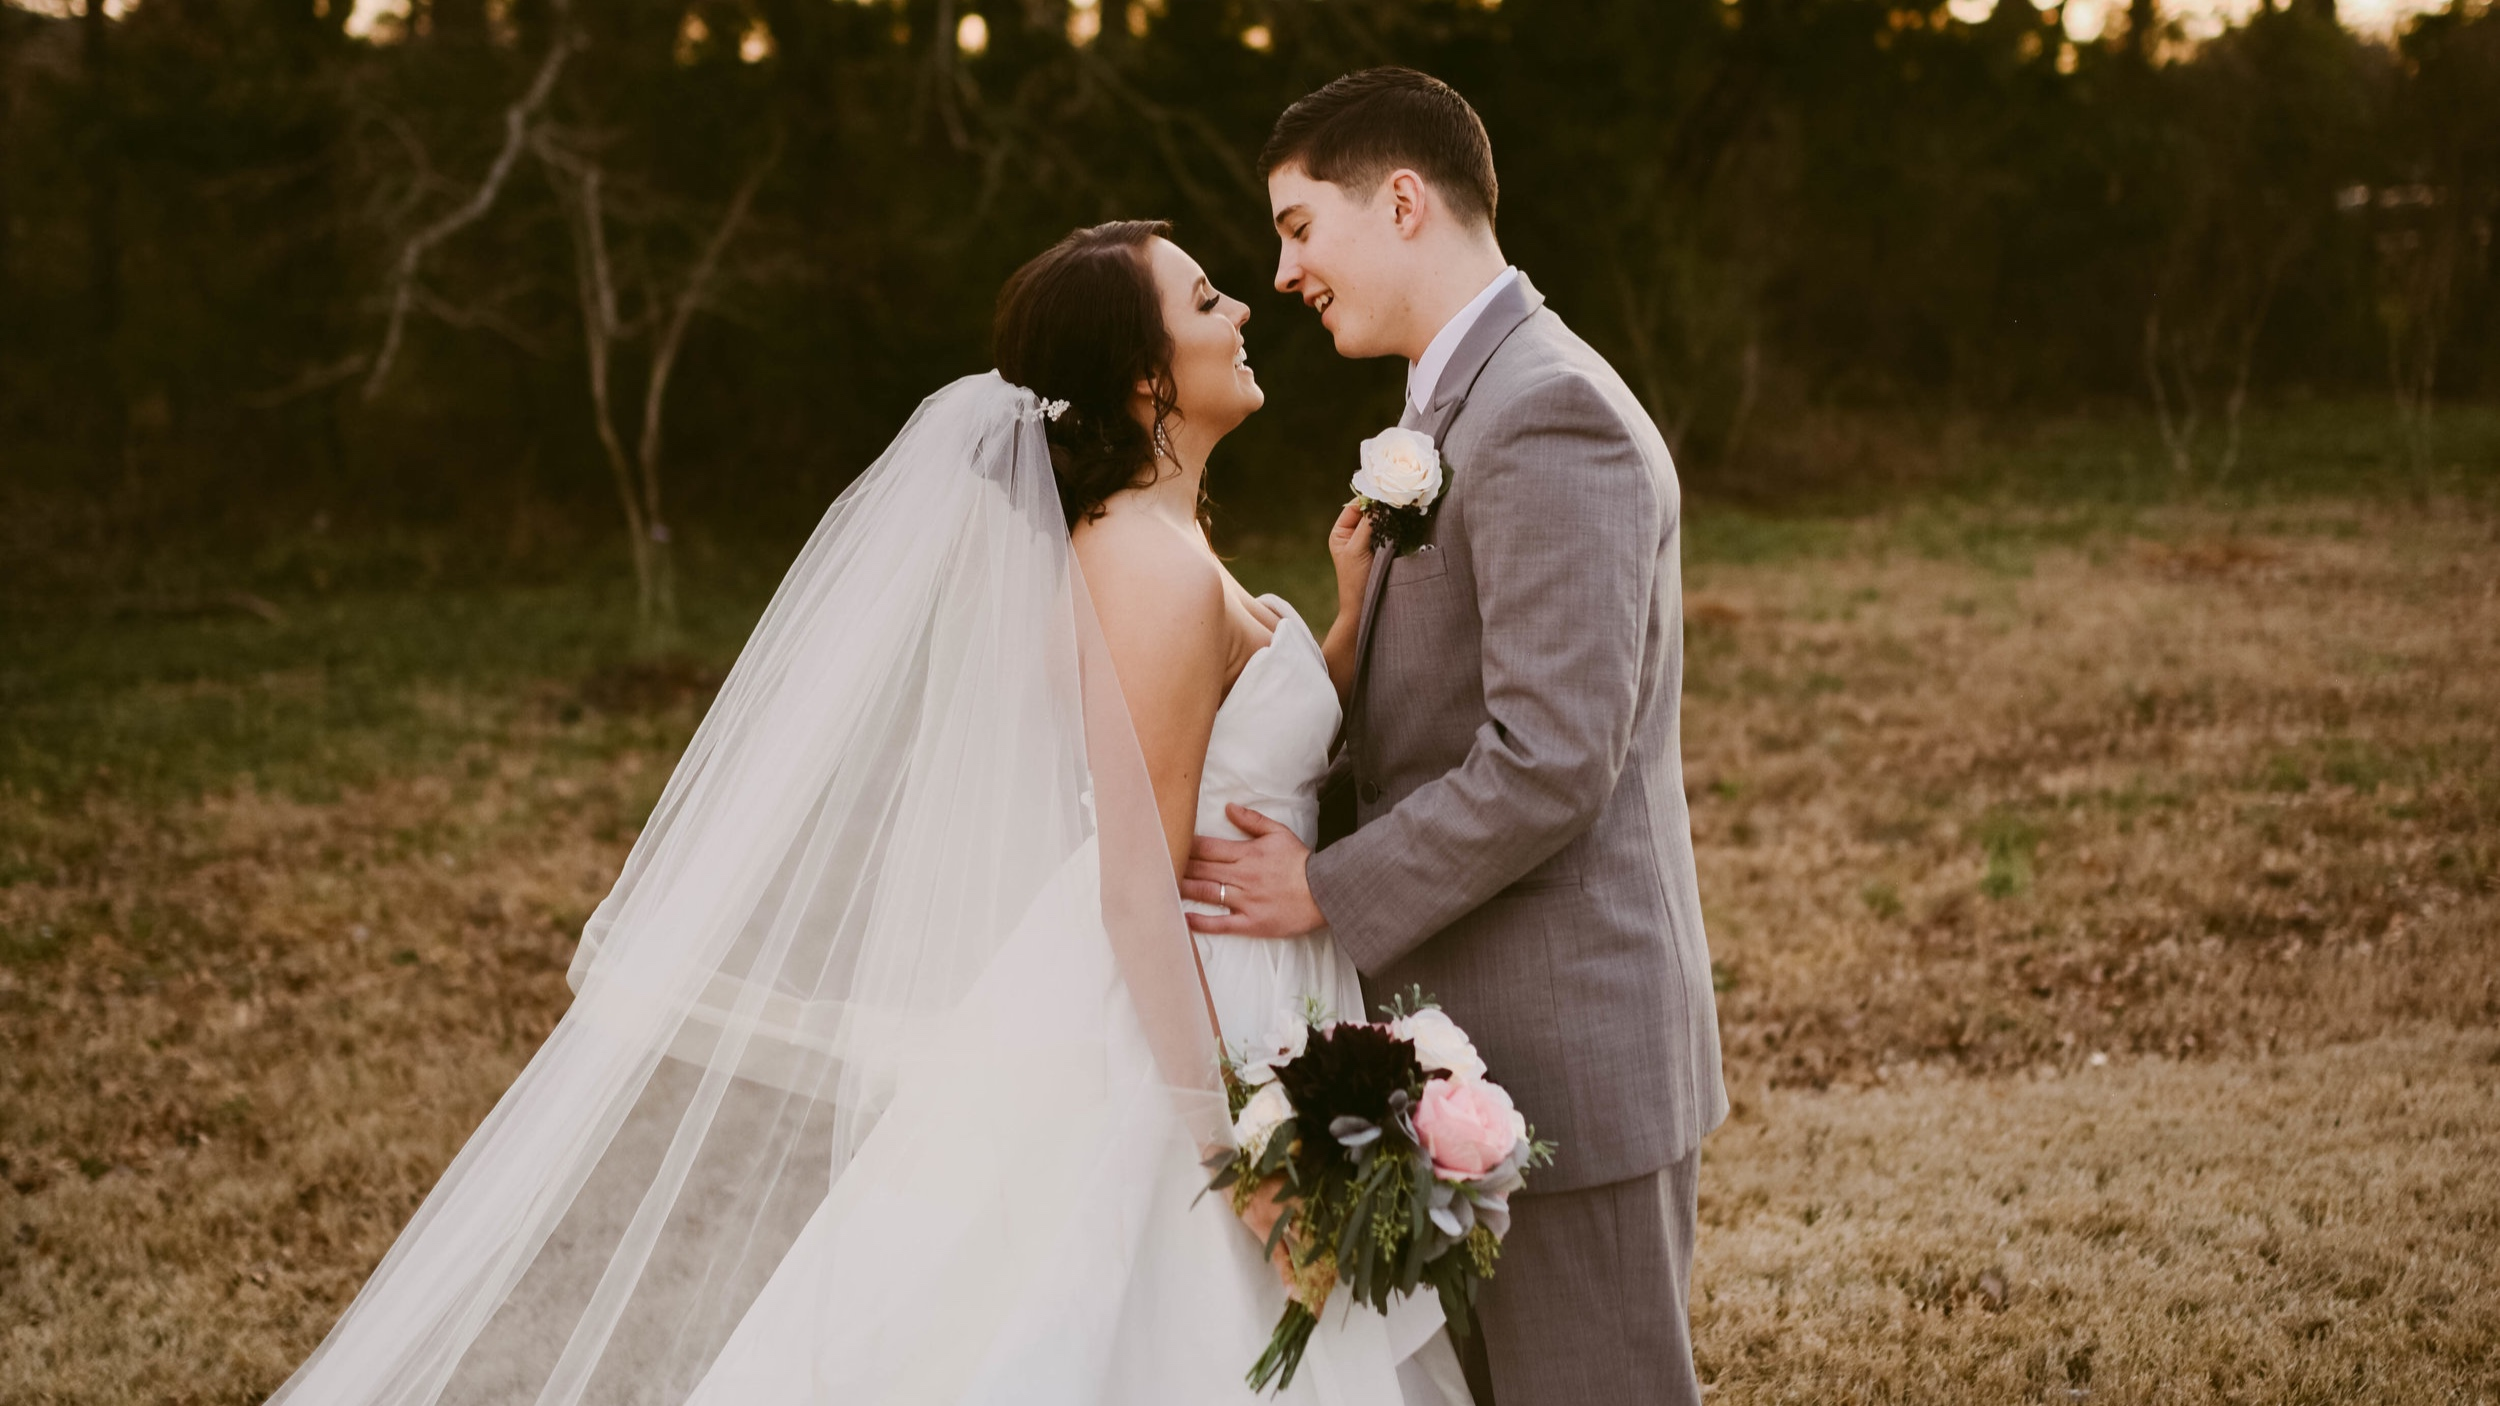 Weddings - Your story is everything. Let's make sure you never forget where it began.